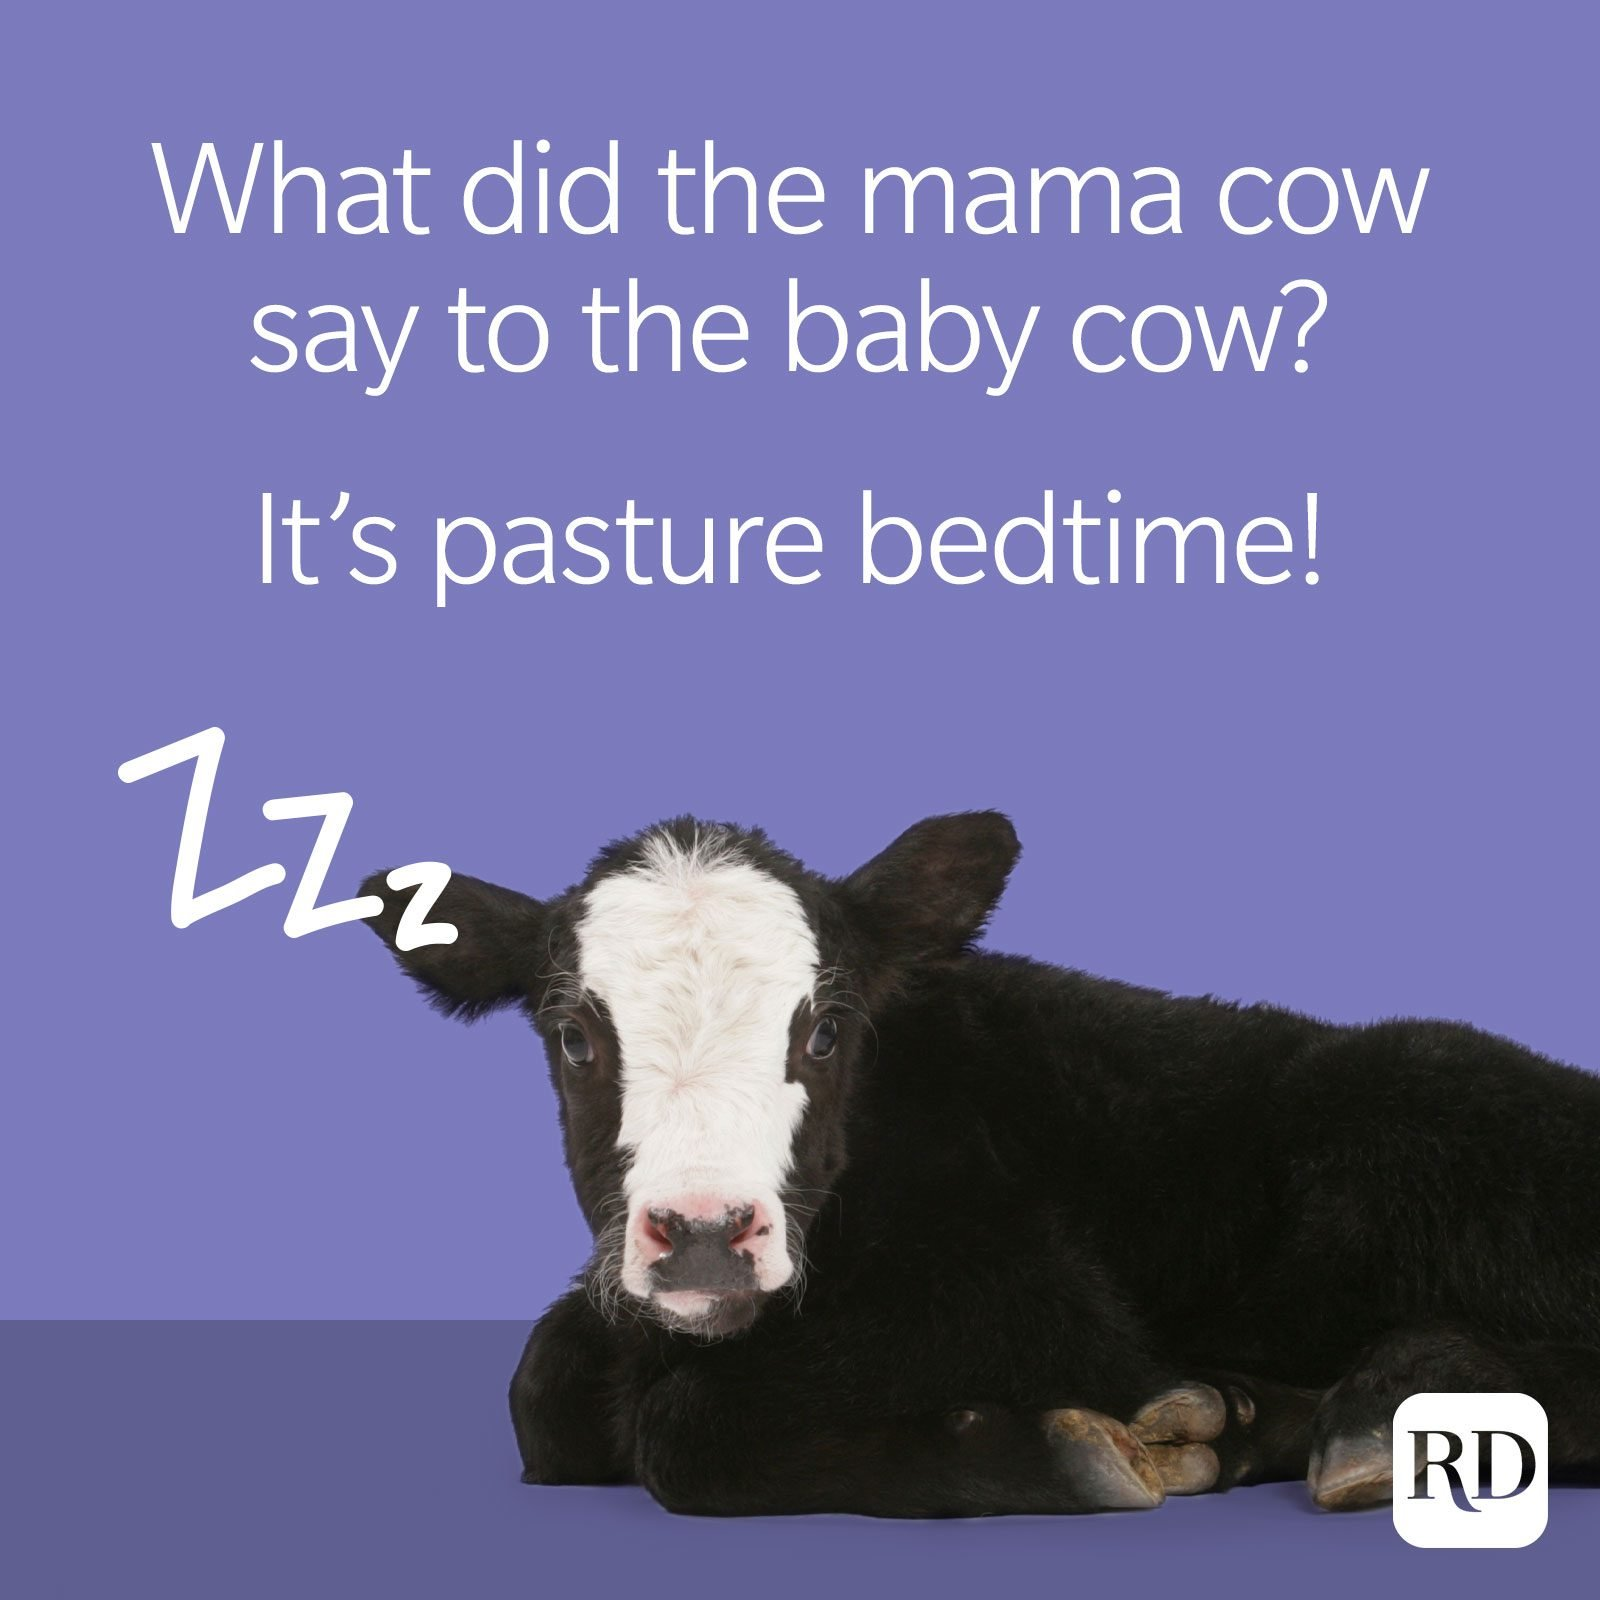 21. What did the mama cow say to the baby cow? It's pasture bedtime!